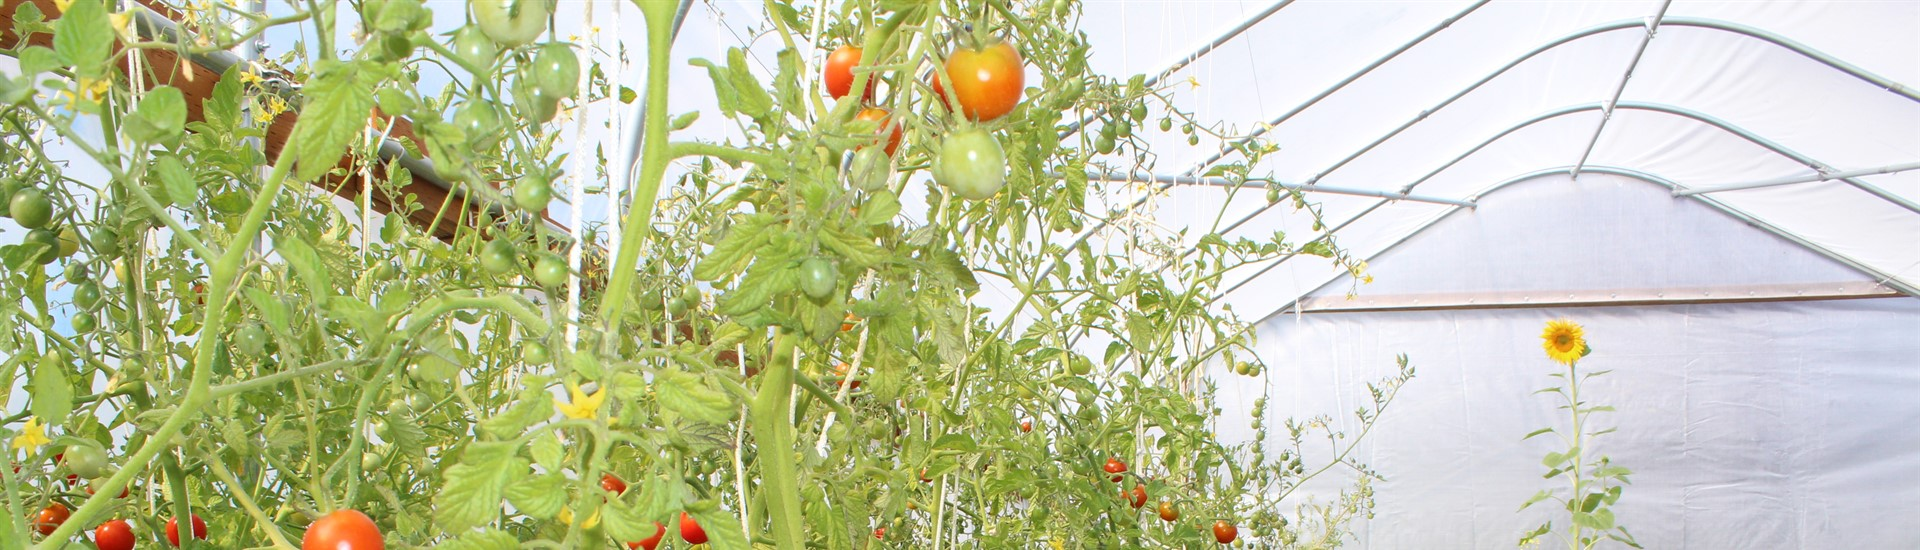 SIS greenhouse tomatoes